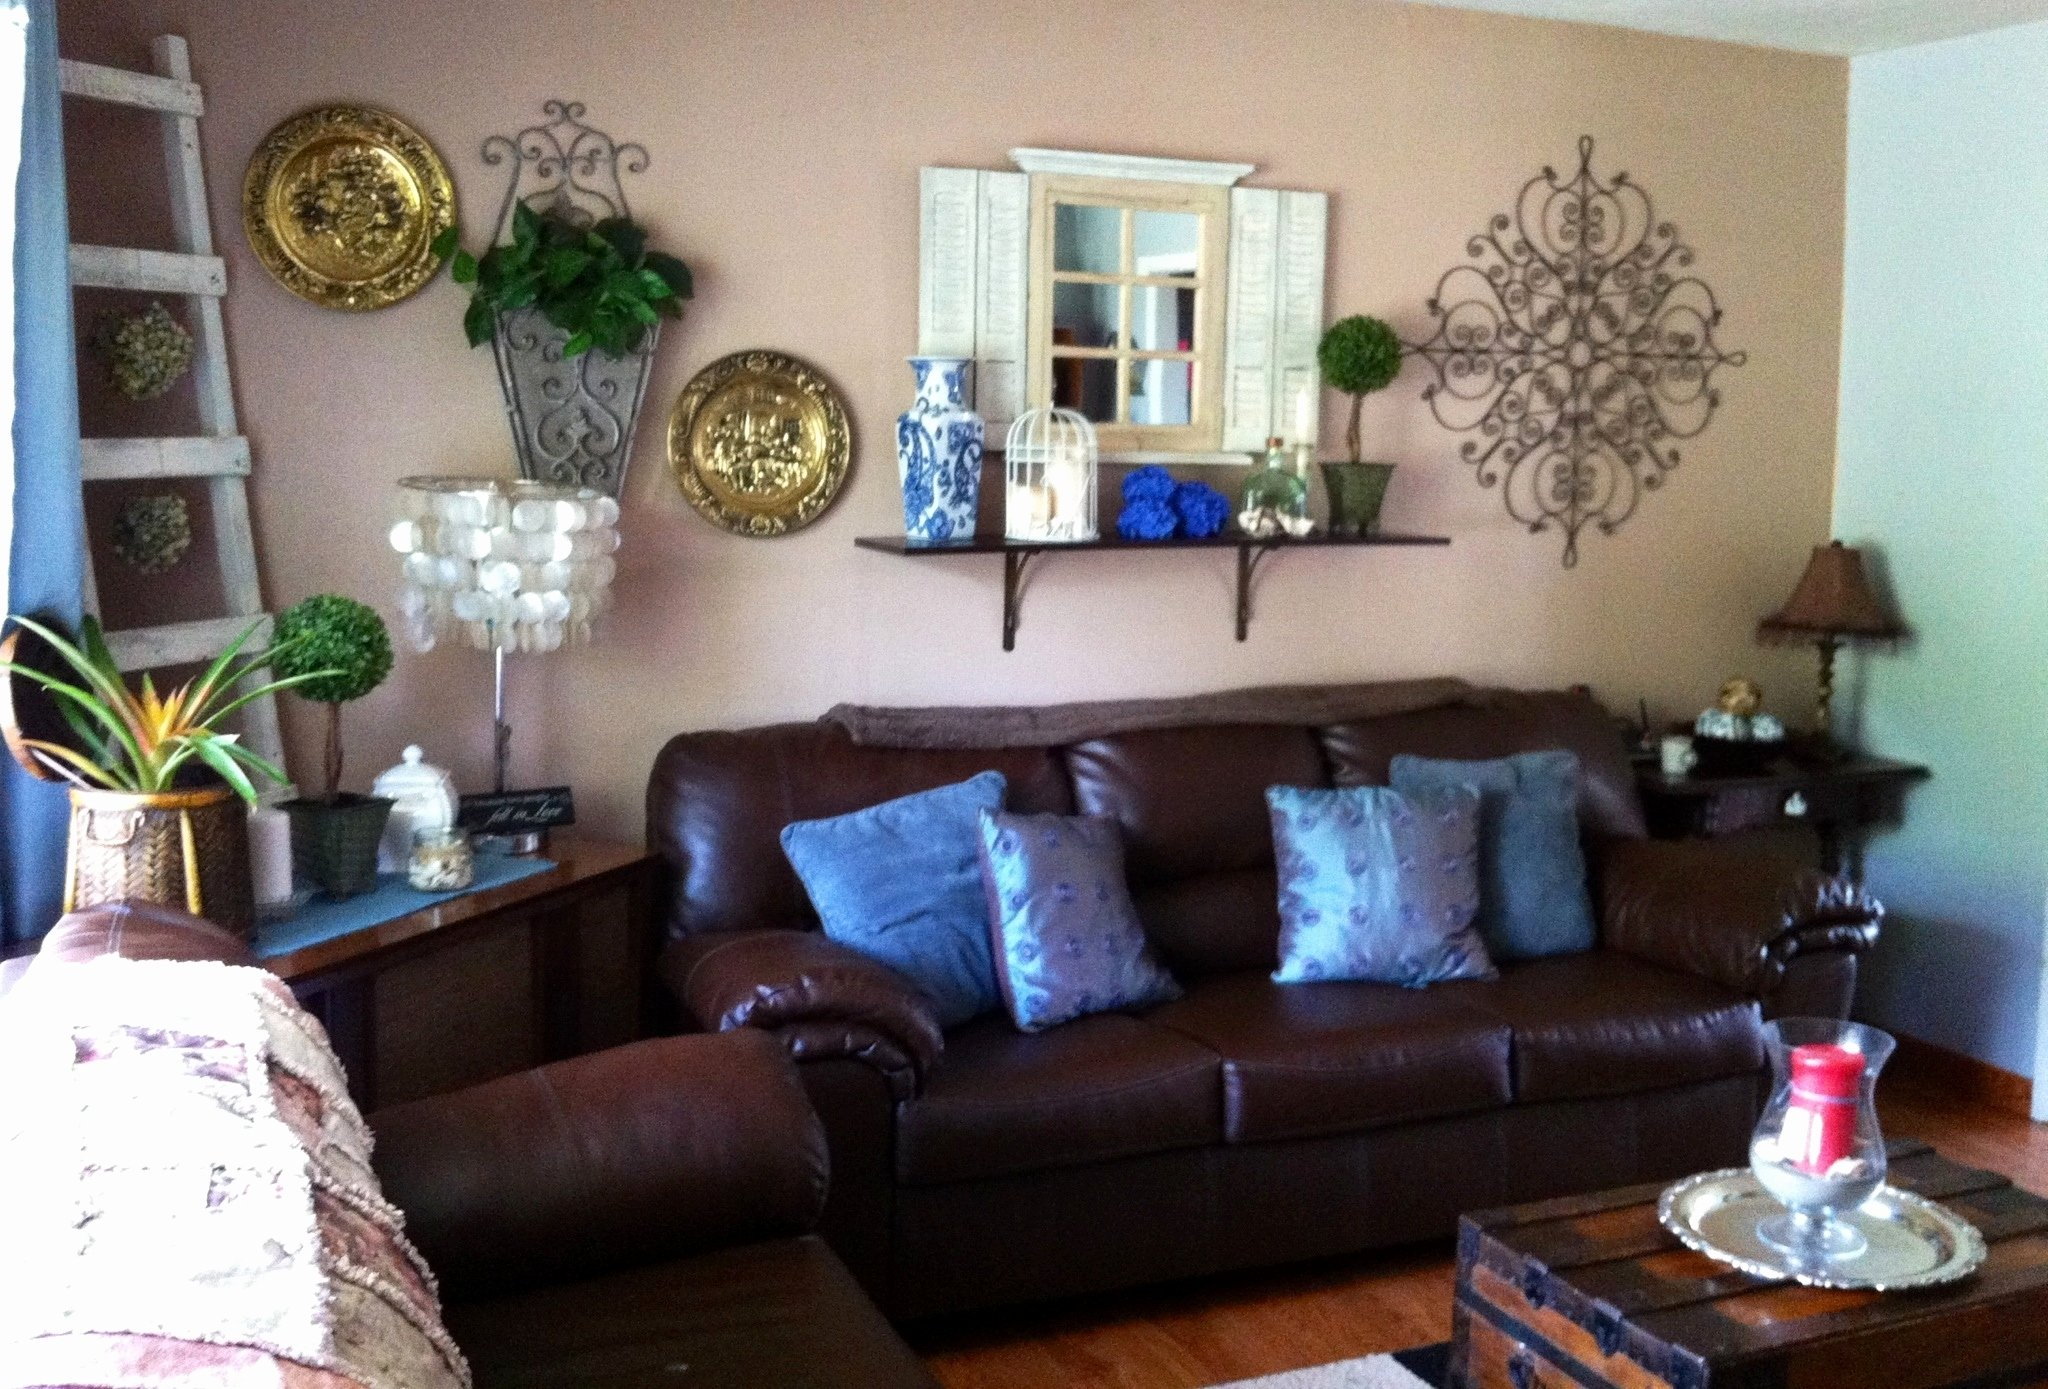 10 Attractive Blue And Brown Living Room Ideas lovely blue and brown decorating ideas living room living room